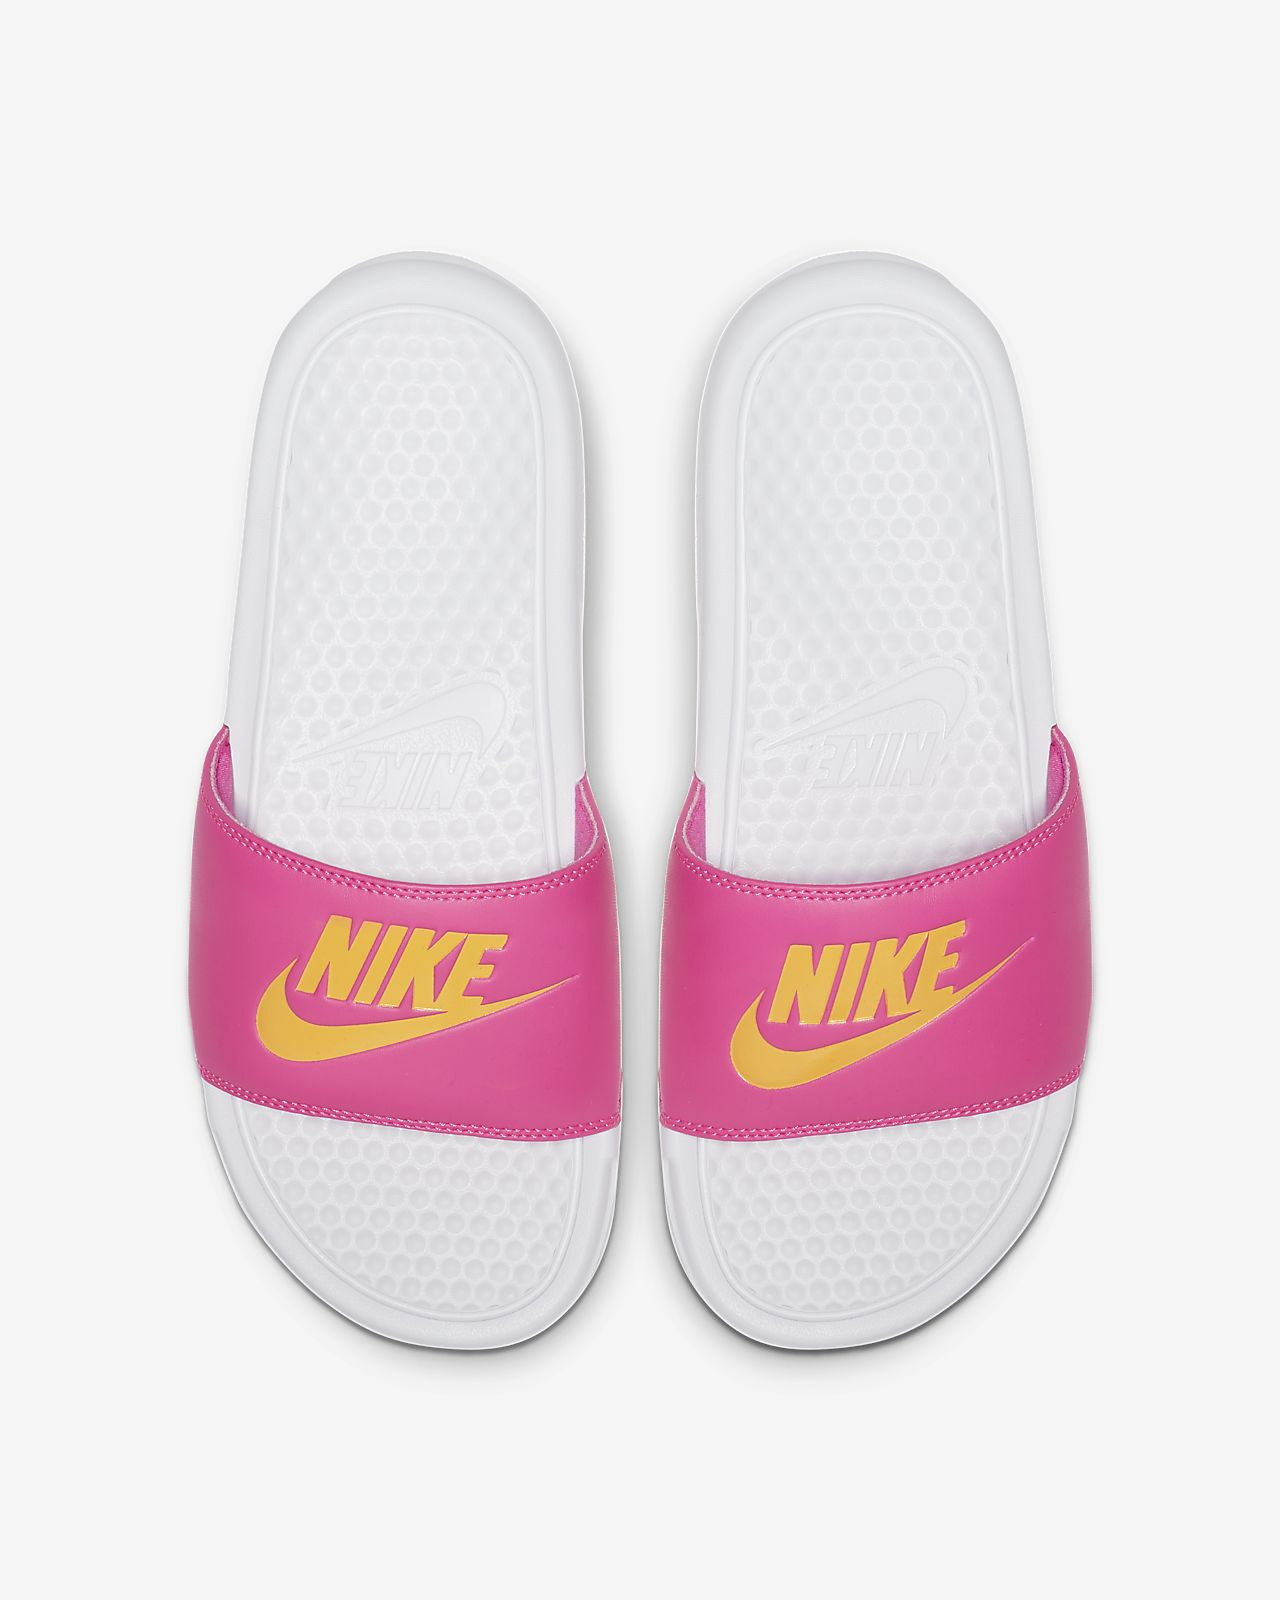 3512dd4ee572 Low Resolution Nike Benassi Women s Slide Nike Benassi Women s Slide